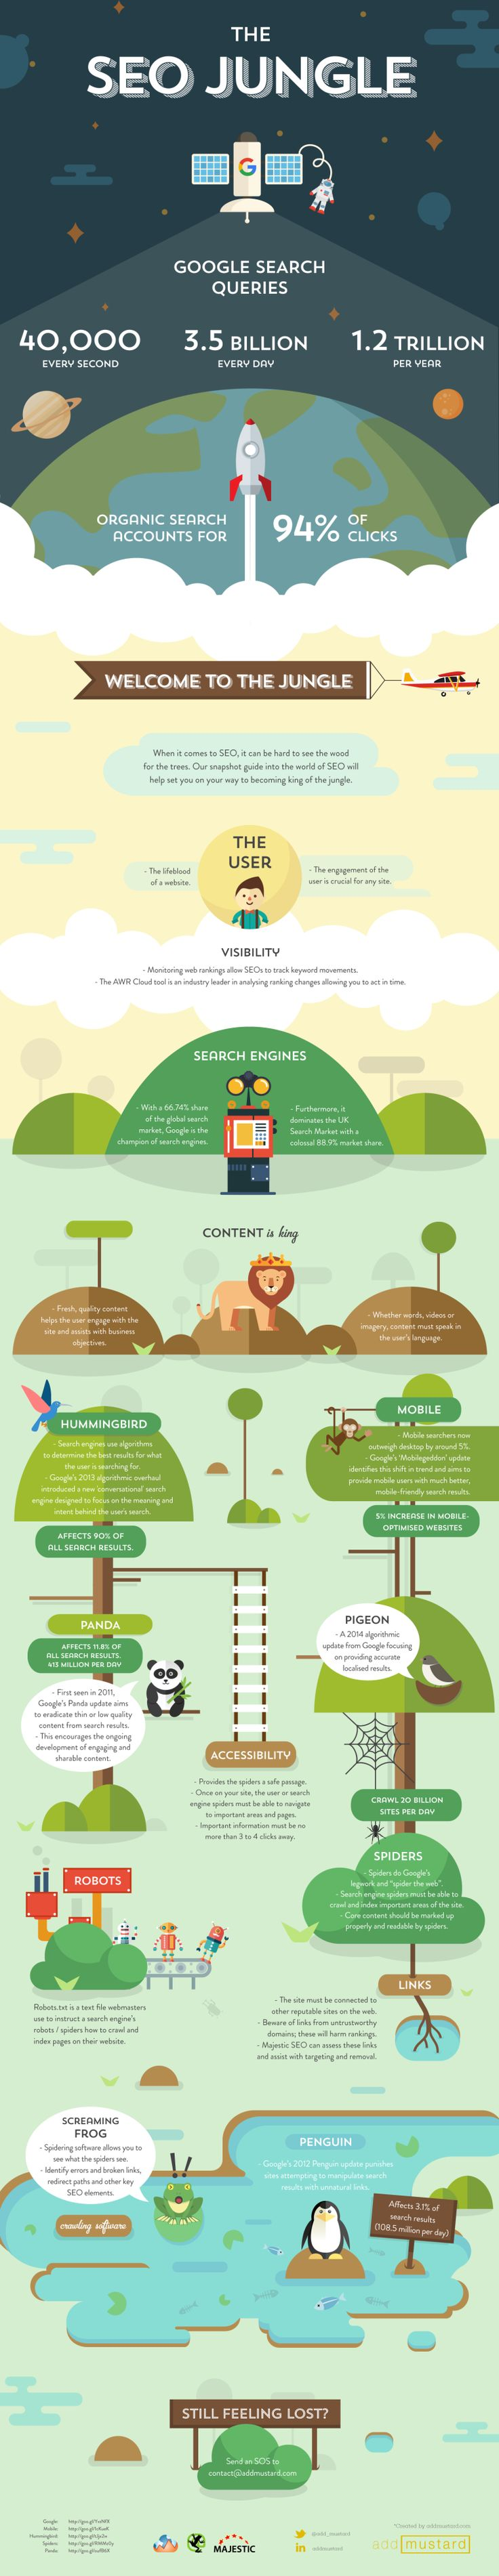 46 Best Seo Images On Pinterest Inbound Marketing Online Linkit Diy House Wiring For Beginners Wp Electrical Ja A Snapshot Of In 2015 And Beyond An Ever Changing Subject That